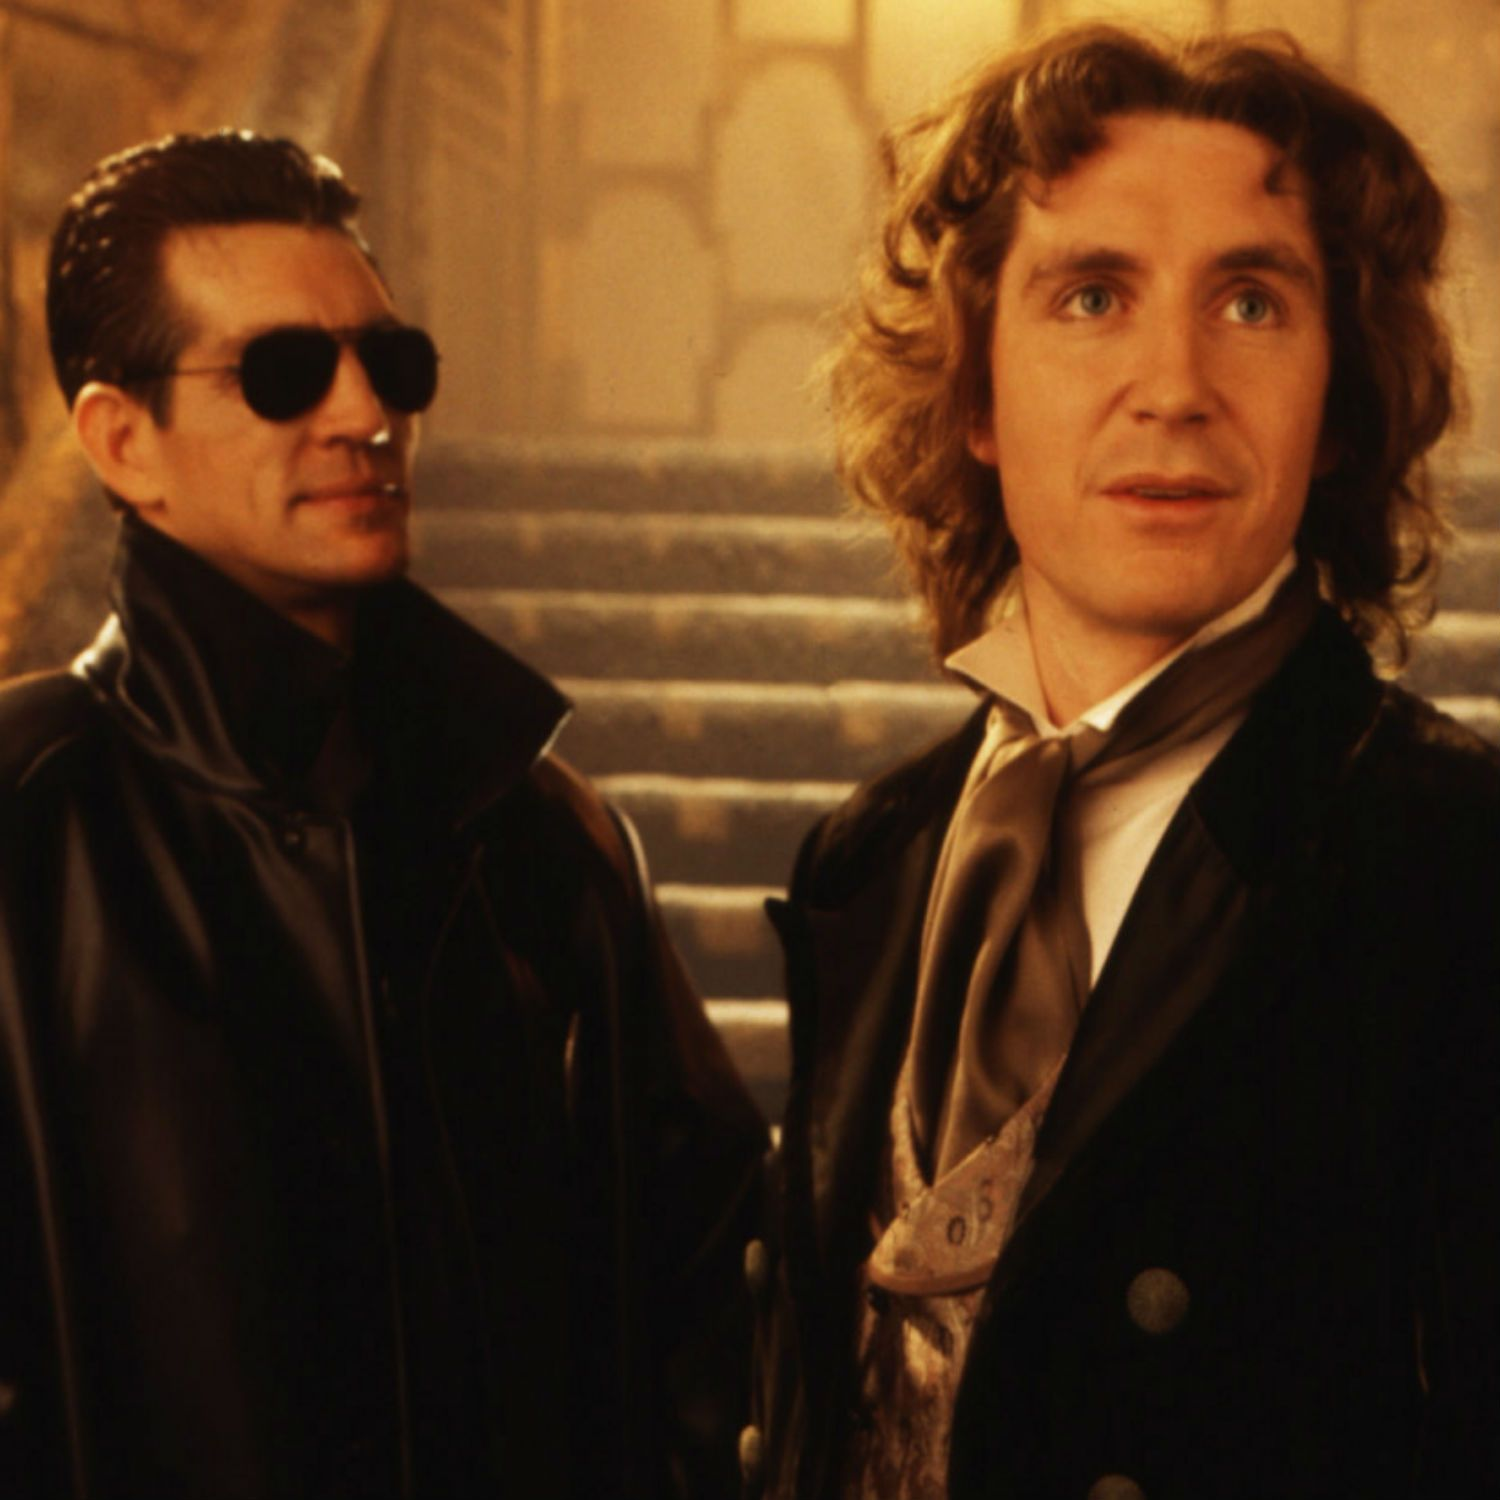 Paul McGann to face Eric Roberts' Master again 23 years after the Doctor Who TV movie